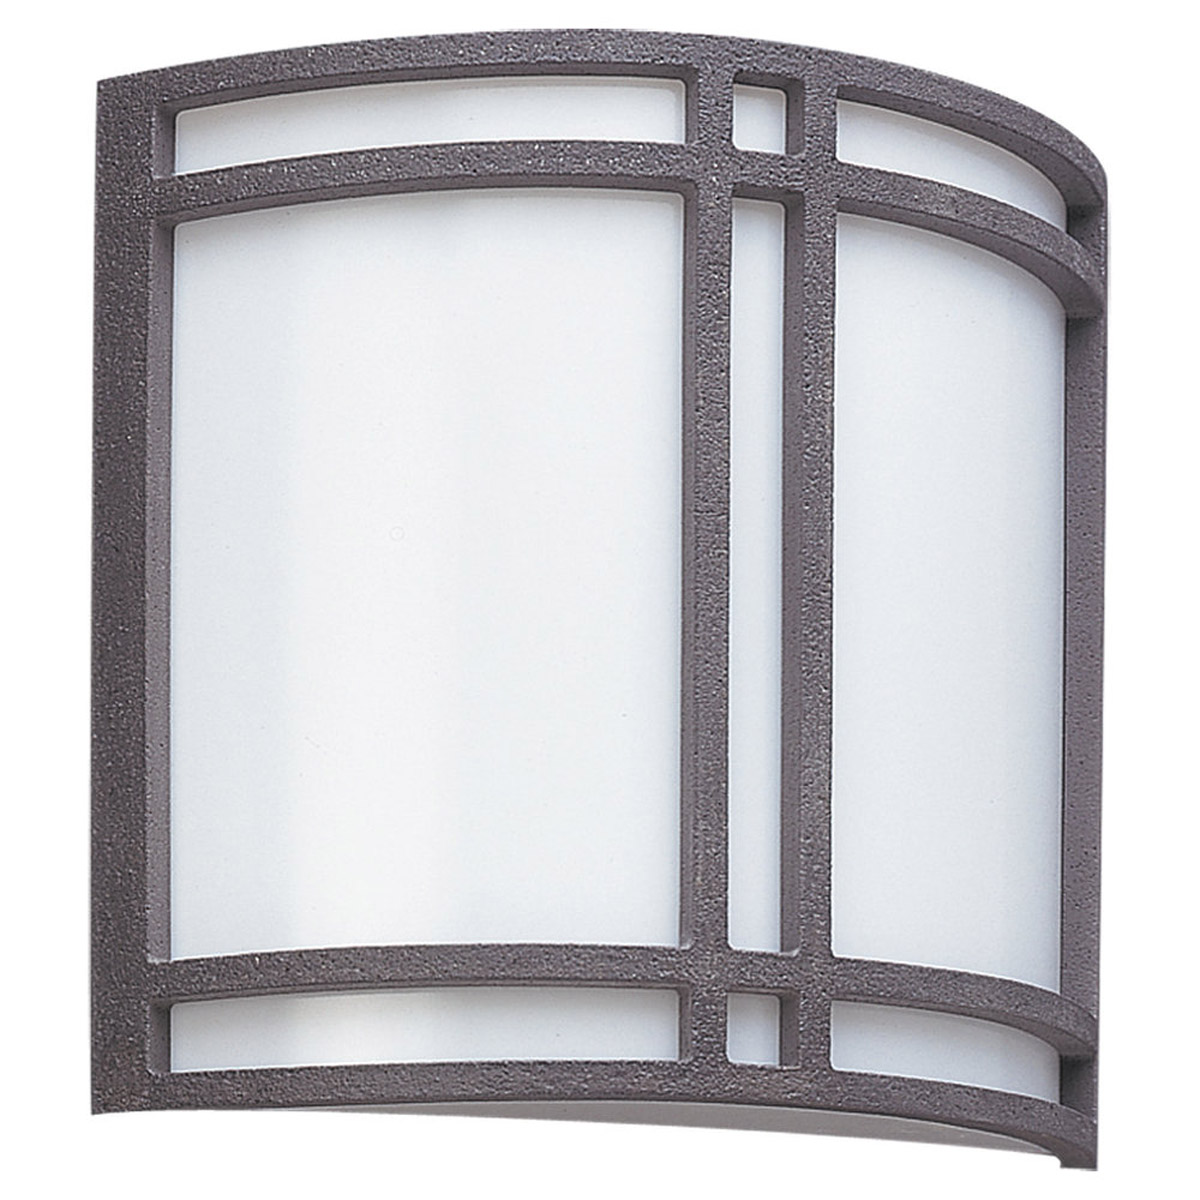 Sea Gull Lighting Piedmont 2 Light Fluorescent Wall/Bath/Vanity in Olde Iron 4966-72